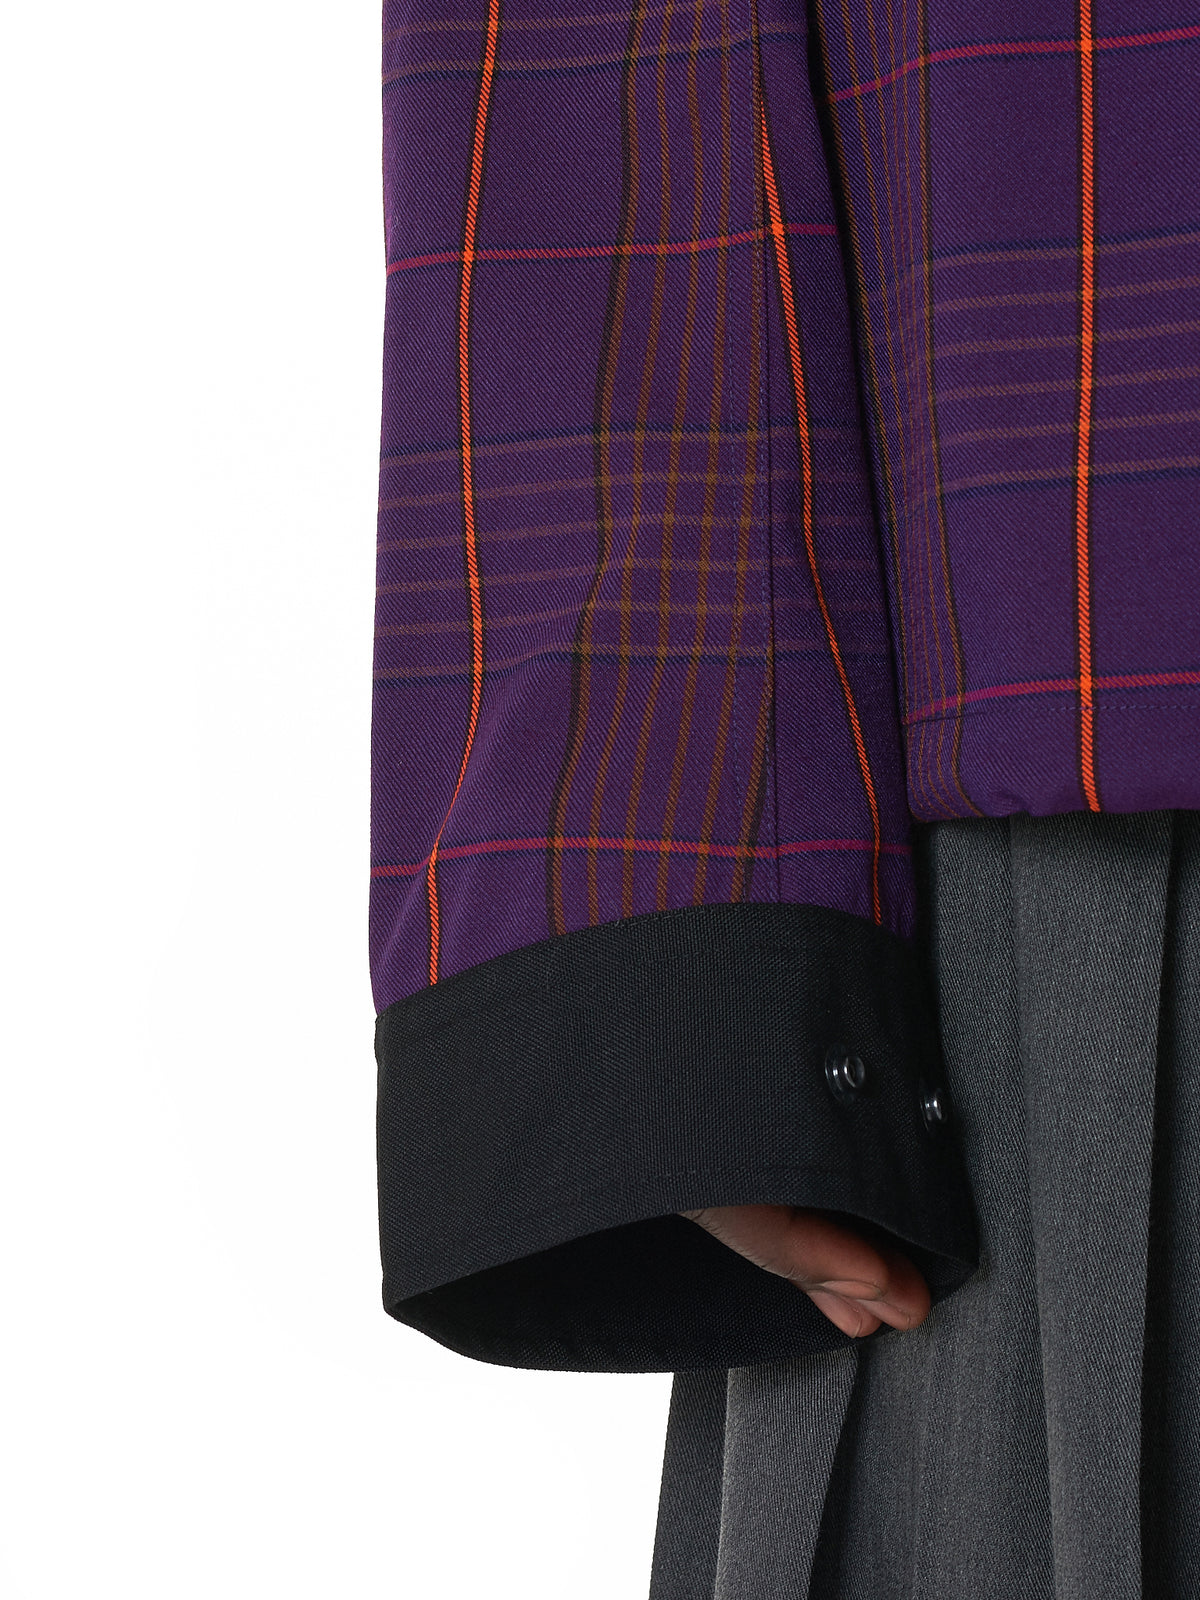 Sankuanz Purple Jacket - Hlorenzo Detail 2